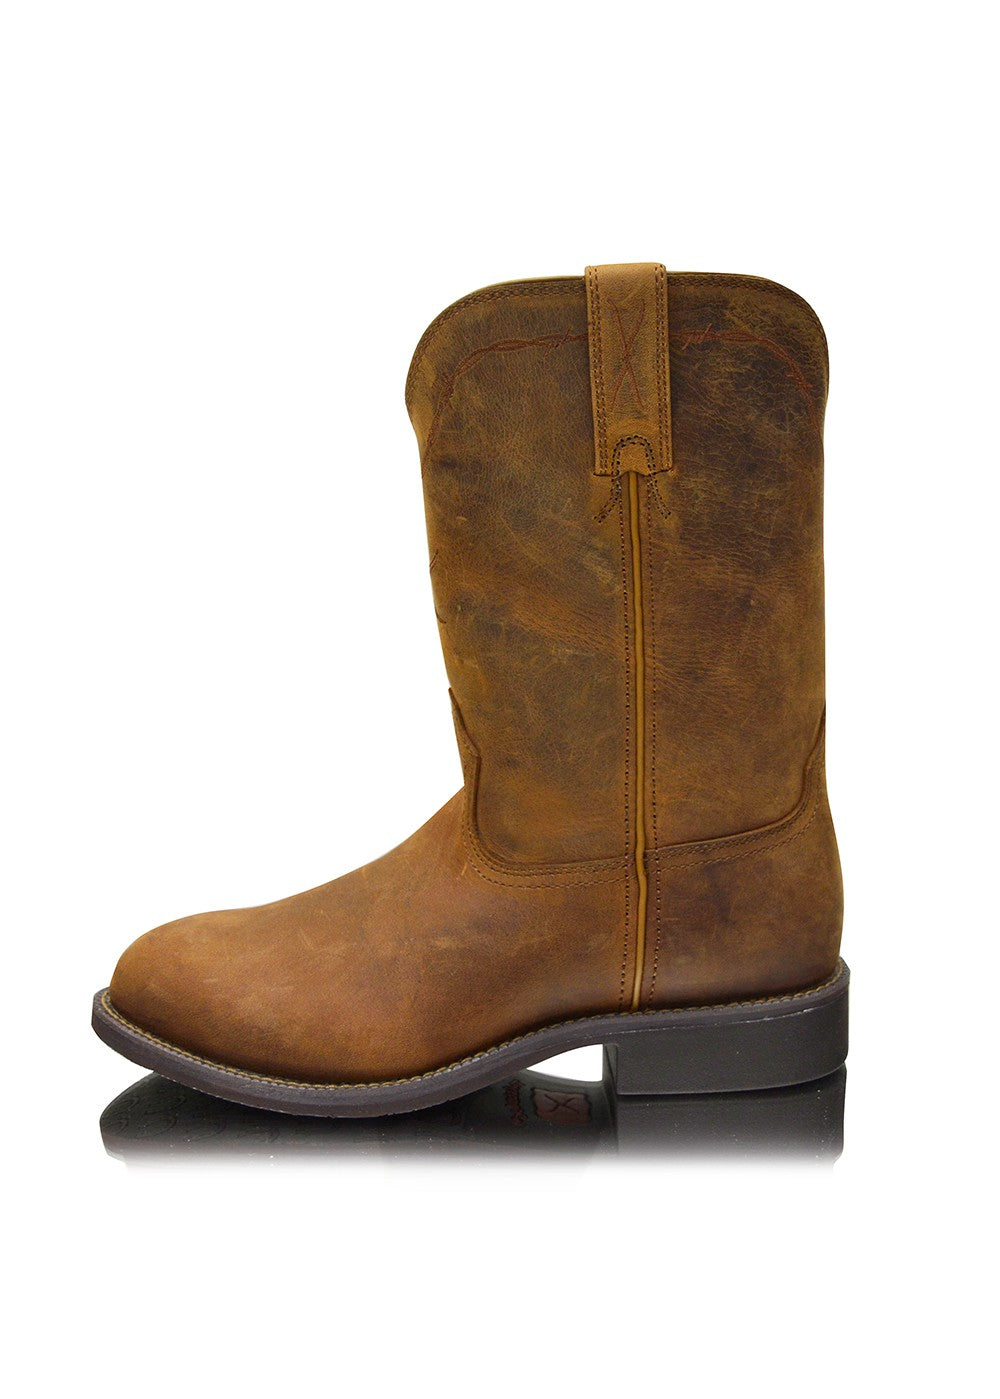 Twisted X | Mens | Boots | Toe Roper | Roper Water Proof | Dark Brown - BK8 Outfitters Australia